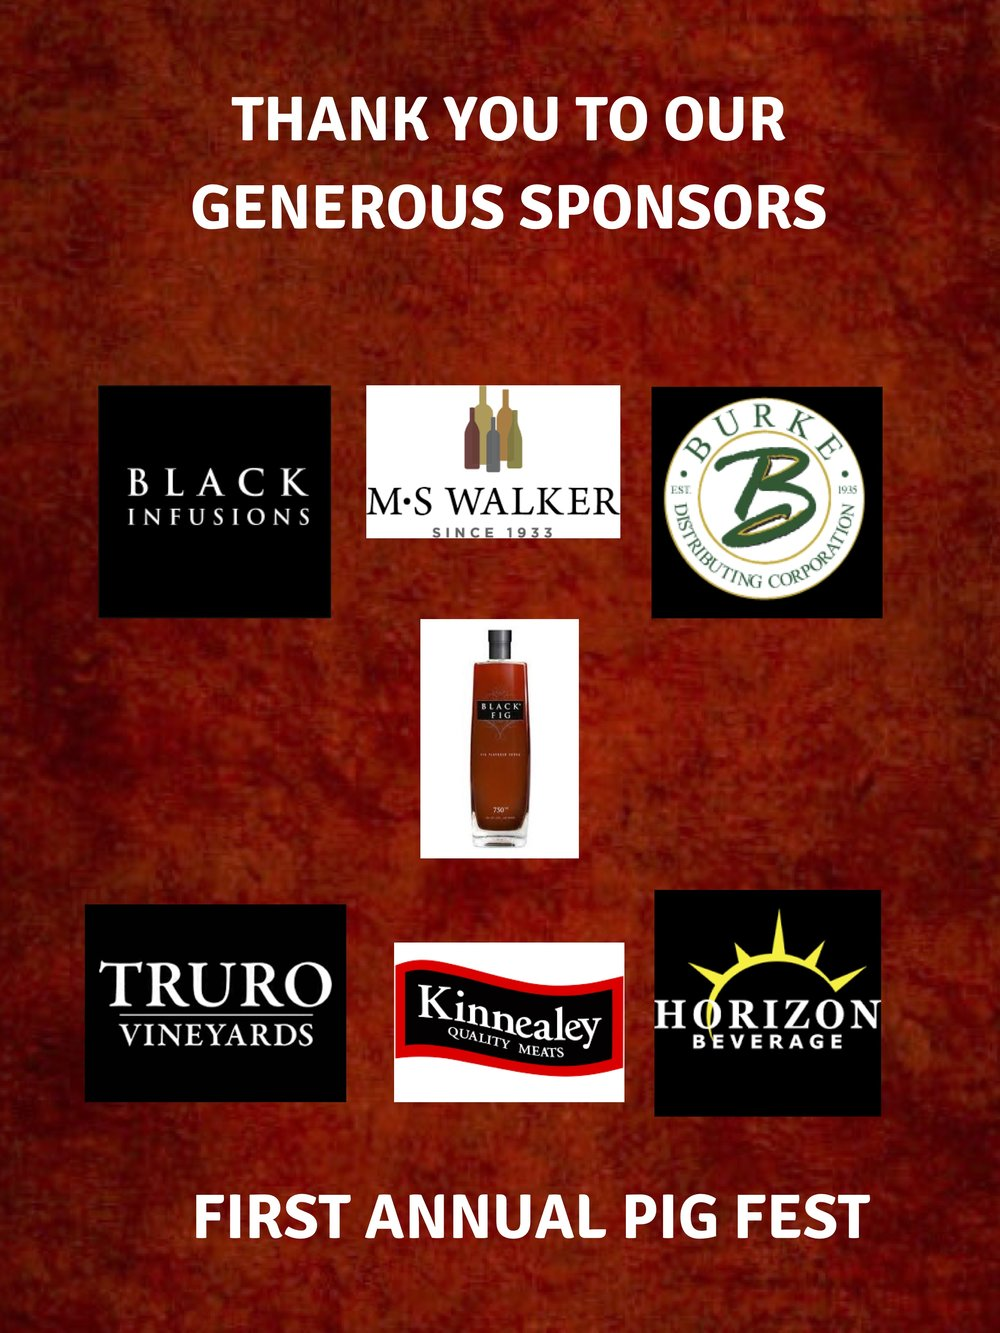 THANK YOU TO OUR GENEROUS SPONSORS.jpg